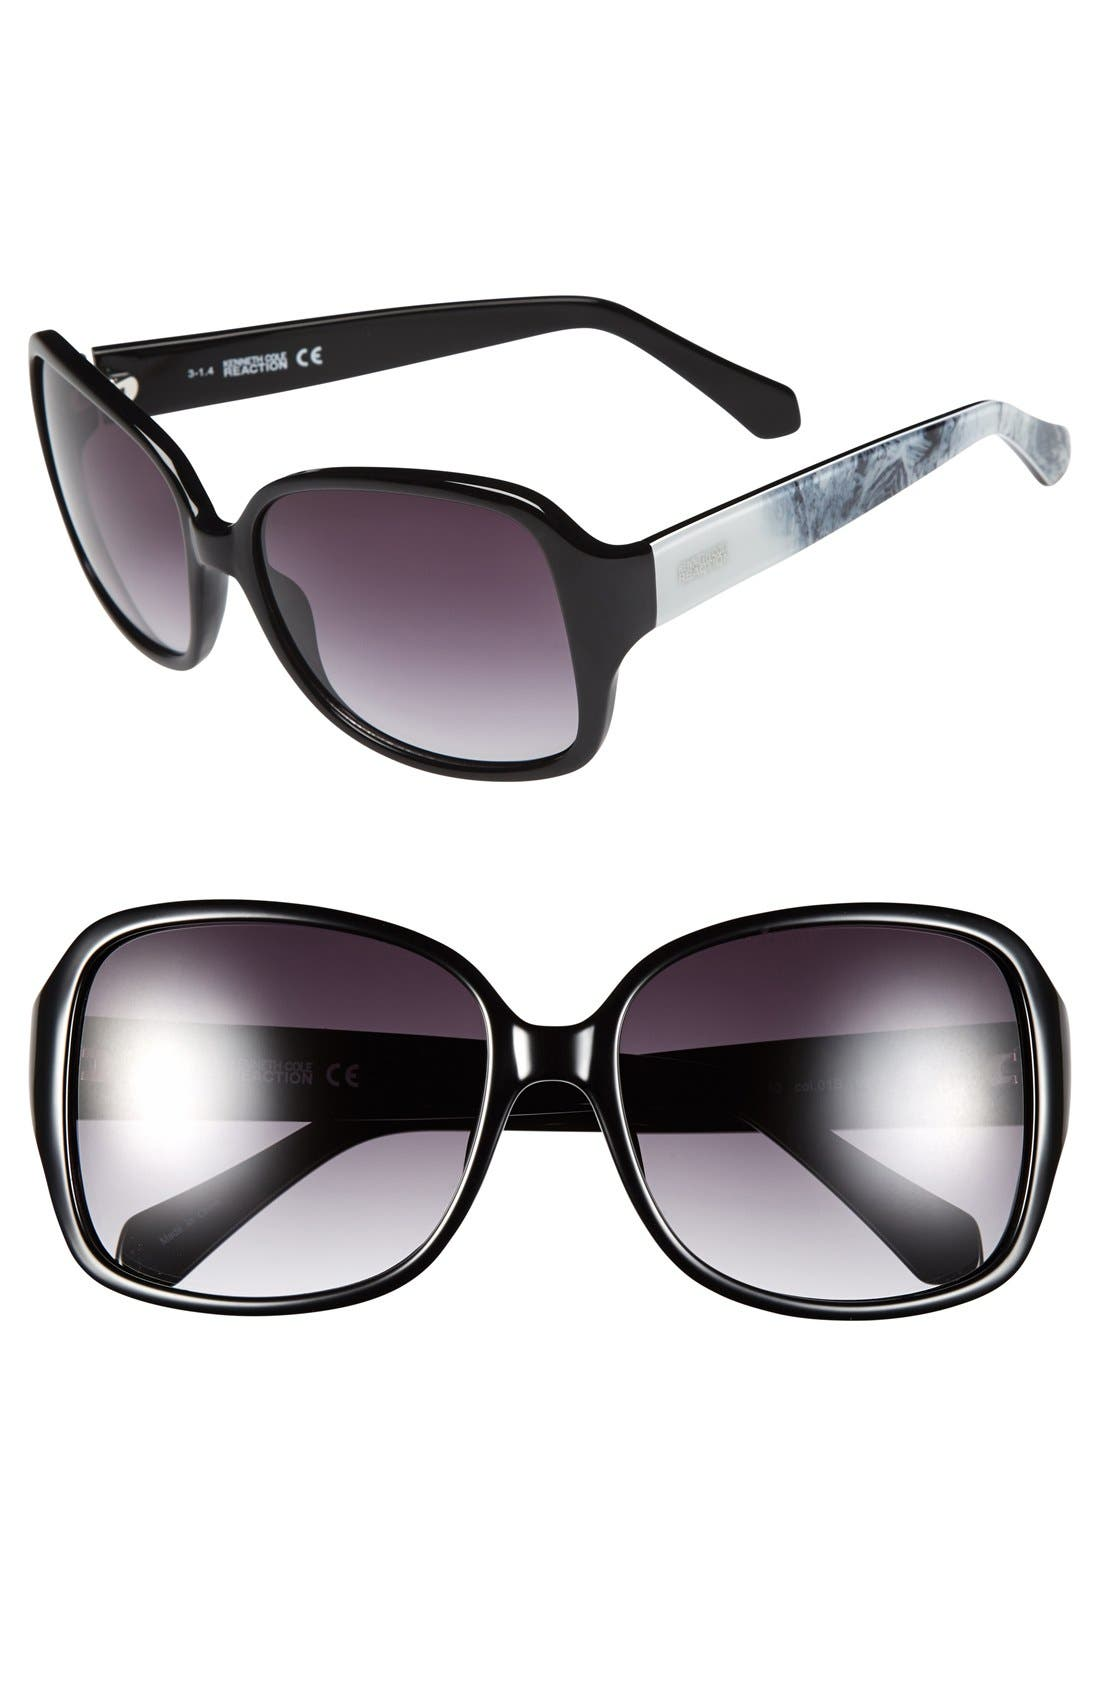 Main Image - Kenneth Cole Reaction 58mm Square Sunglasses